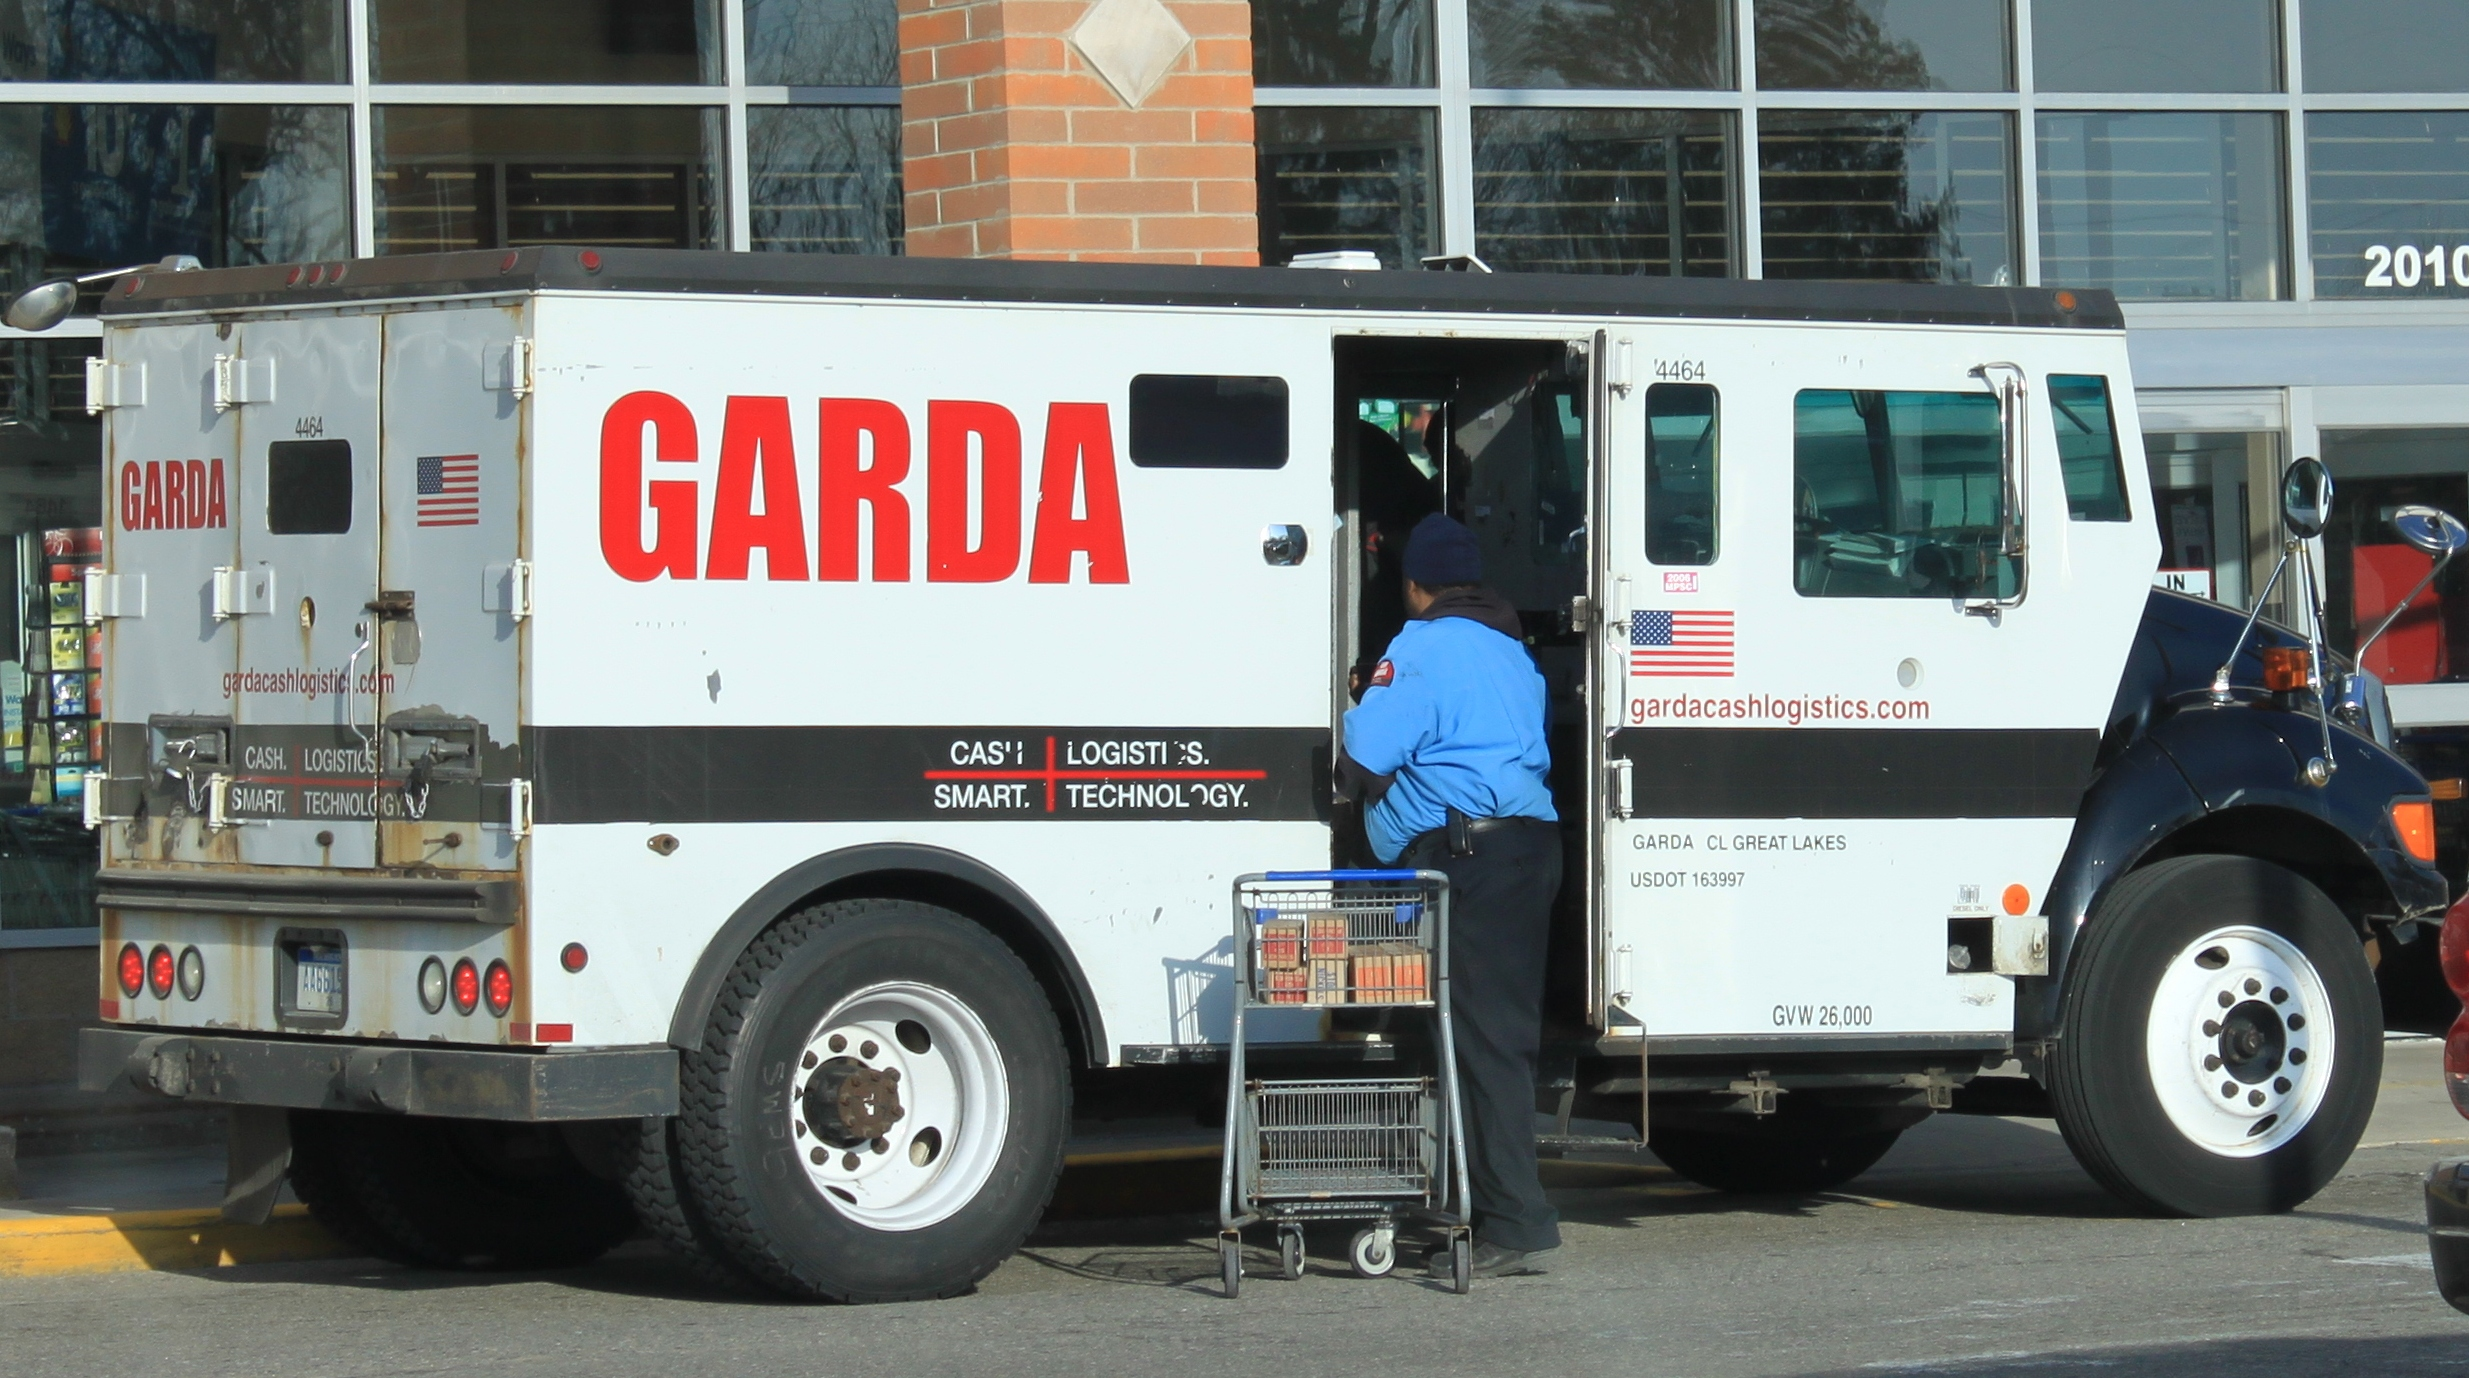 File:Garda armored car Ypsilanti Township Michigan.JPG - Wikimedia ...